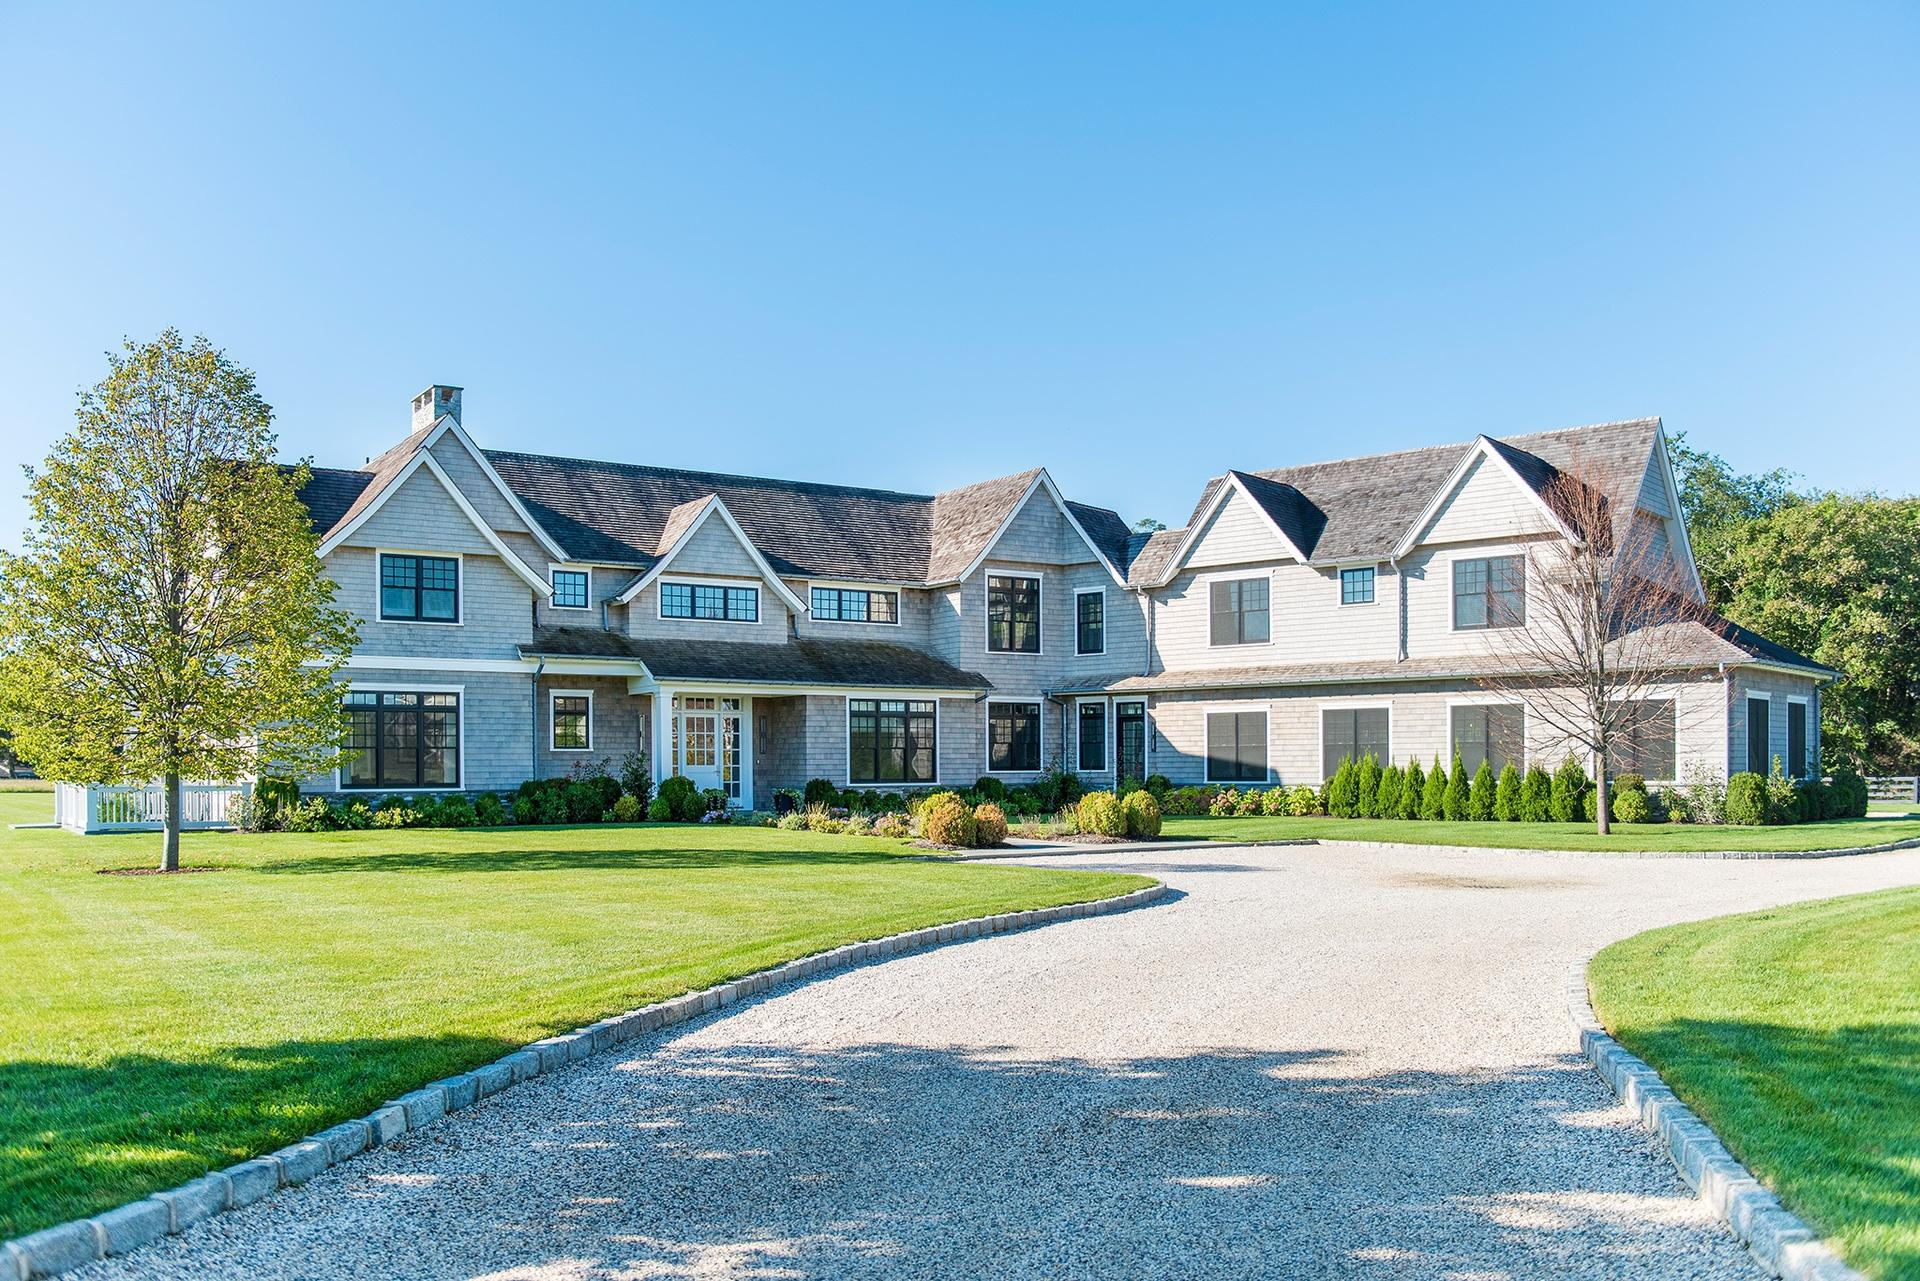 Single Family Home for Sale at Bridgehampton Horse Country Estate 5 Polo Court (Lot 3), Bridgehampton, New York